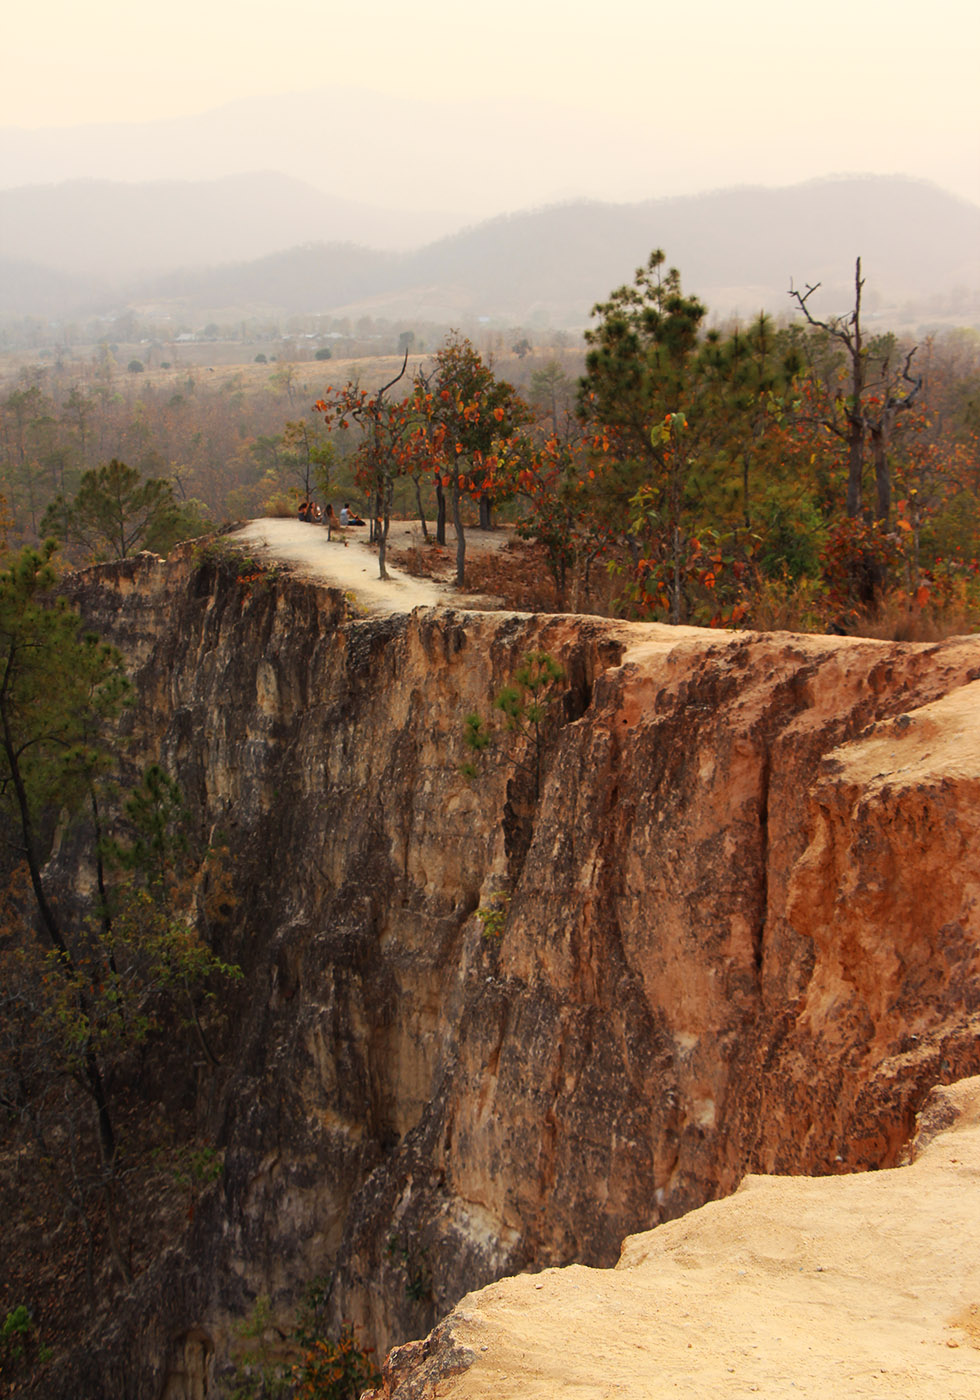 Pai Canyon: Hiking on the Edge of a Cliff